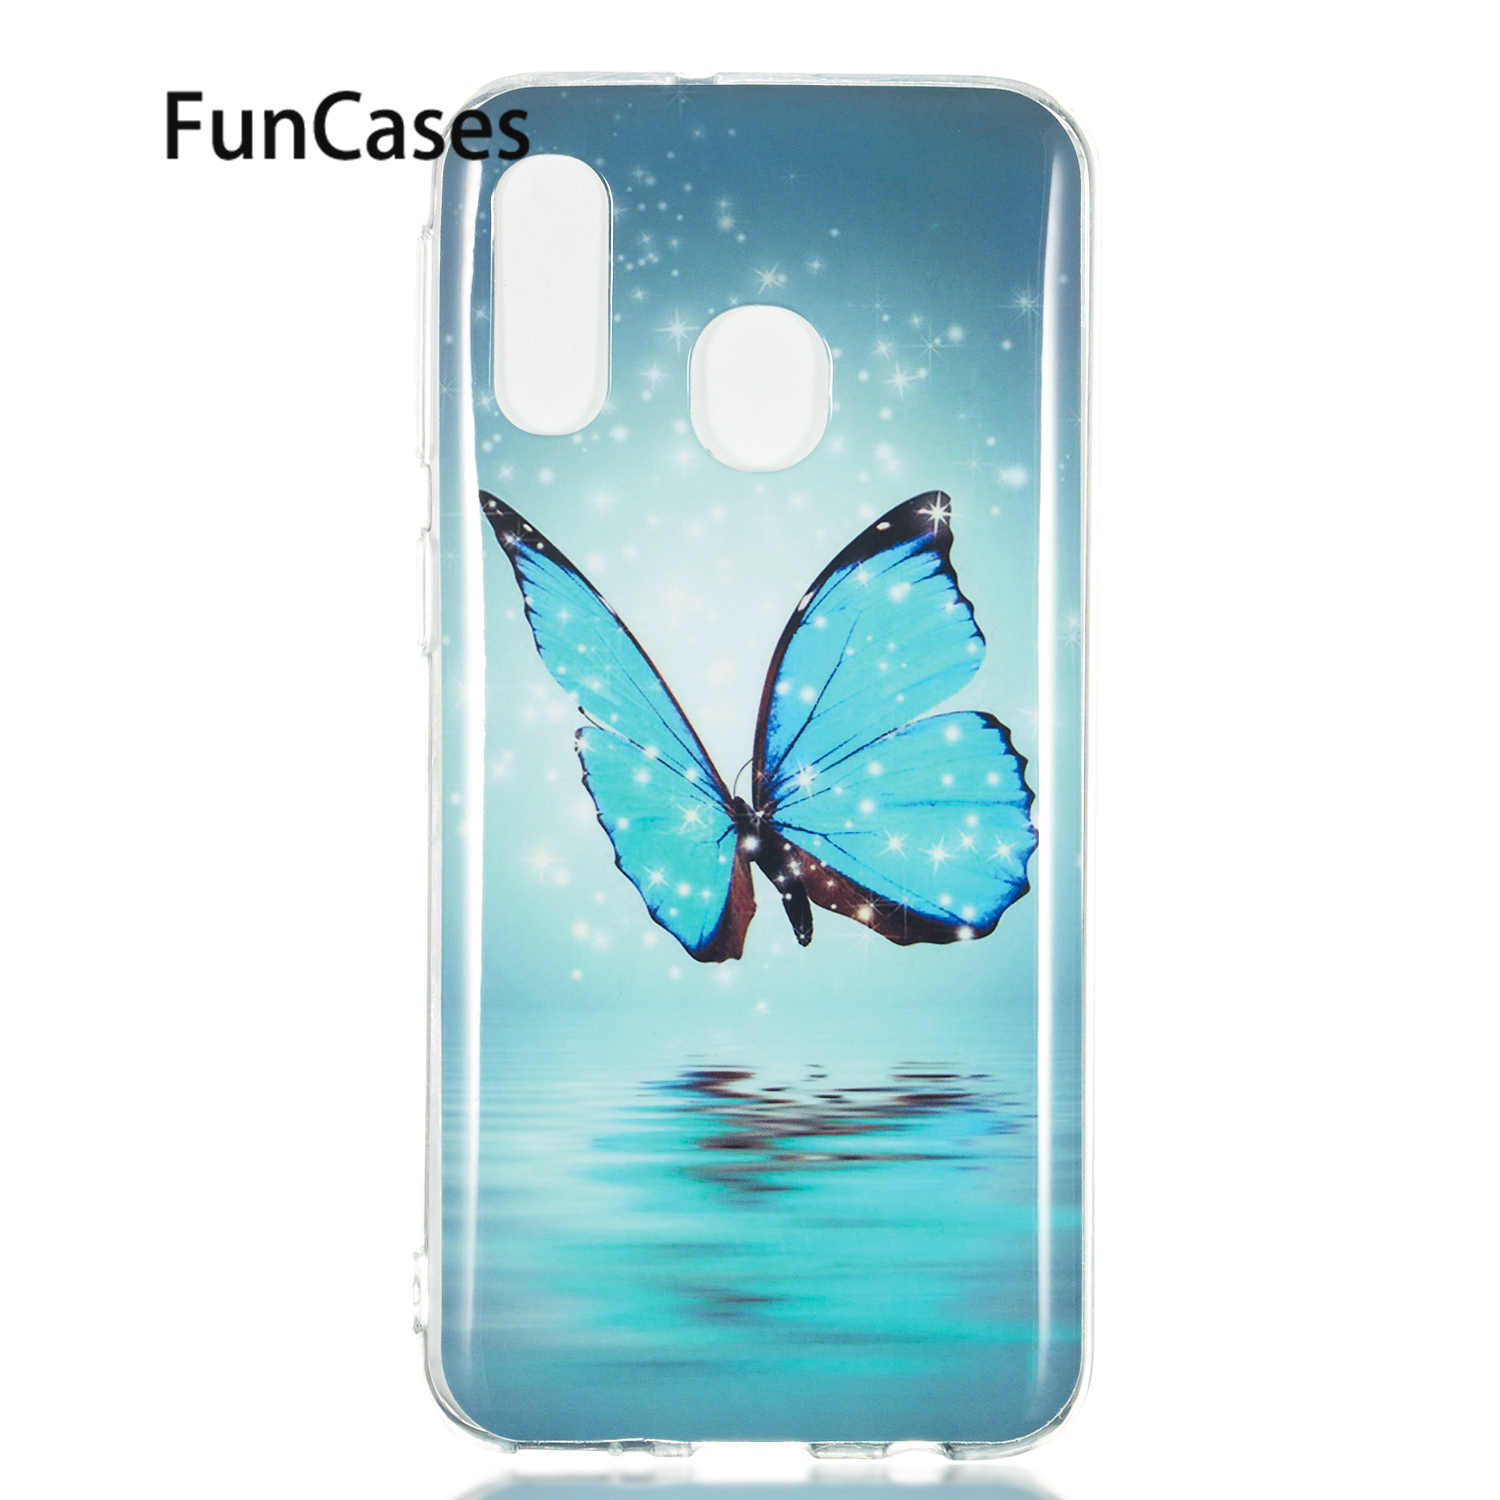 Fitted Case For Samsung A8S Soft Silicone Cover sFor Samsung Galaxy A40 A50 A6 2018 Plus A7 A750 A70 A9 J2 Core J3 J4 J6 J7 J8